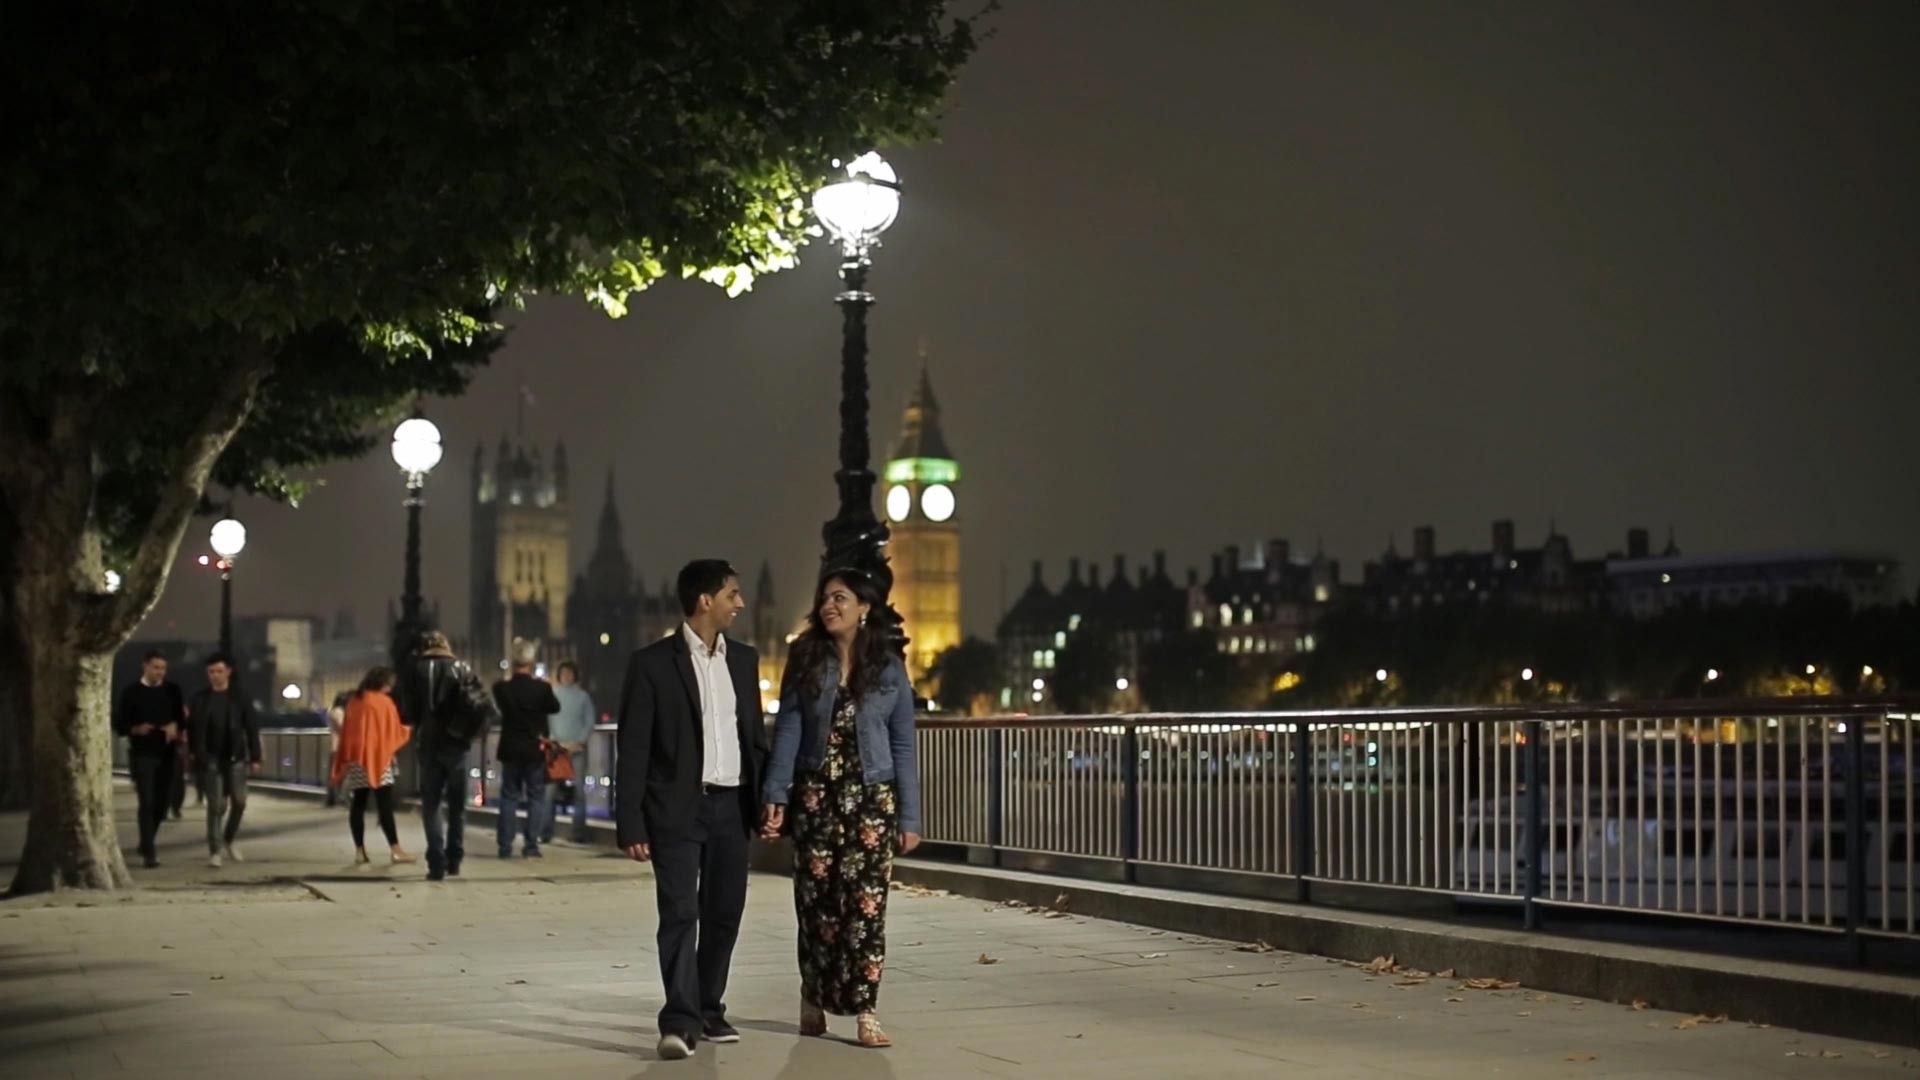 westminster cinematography Archives   UK wedding cinematographer     ENGAGEMENT CINEMATOGRAPHY  LONDON BY NIGHT